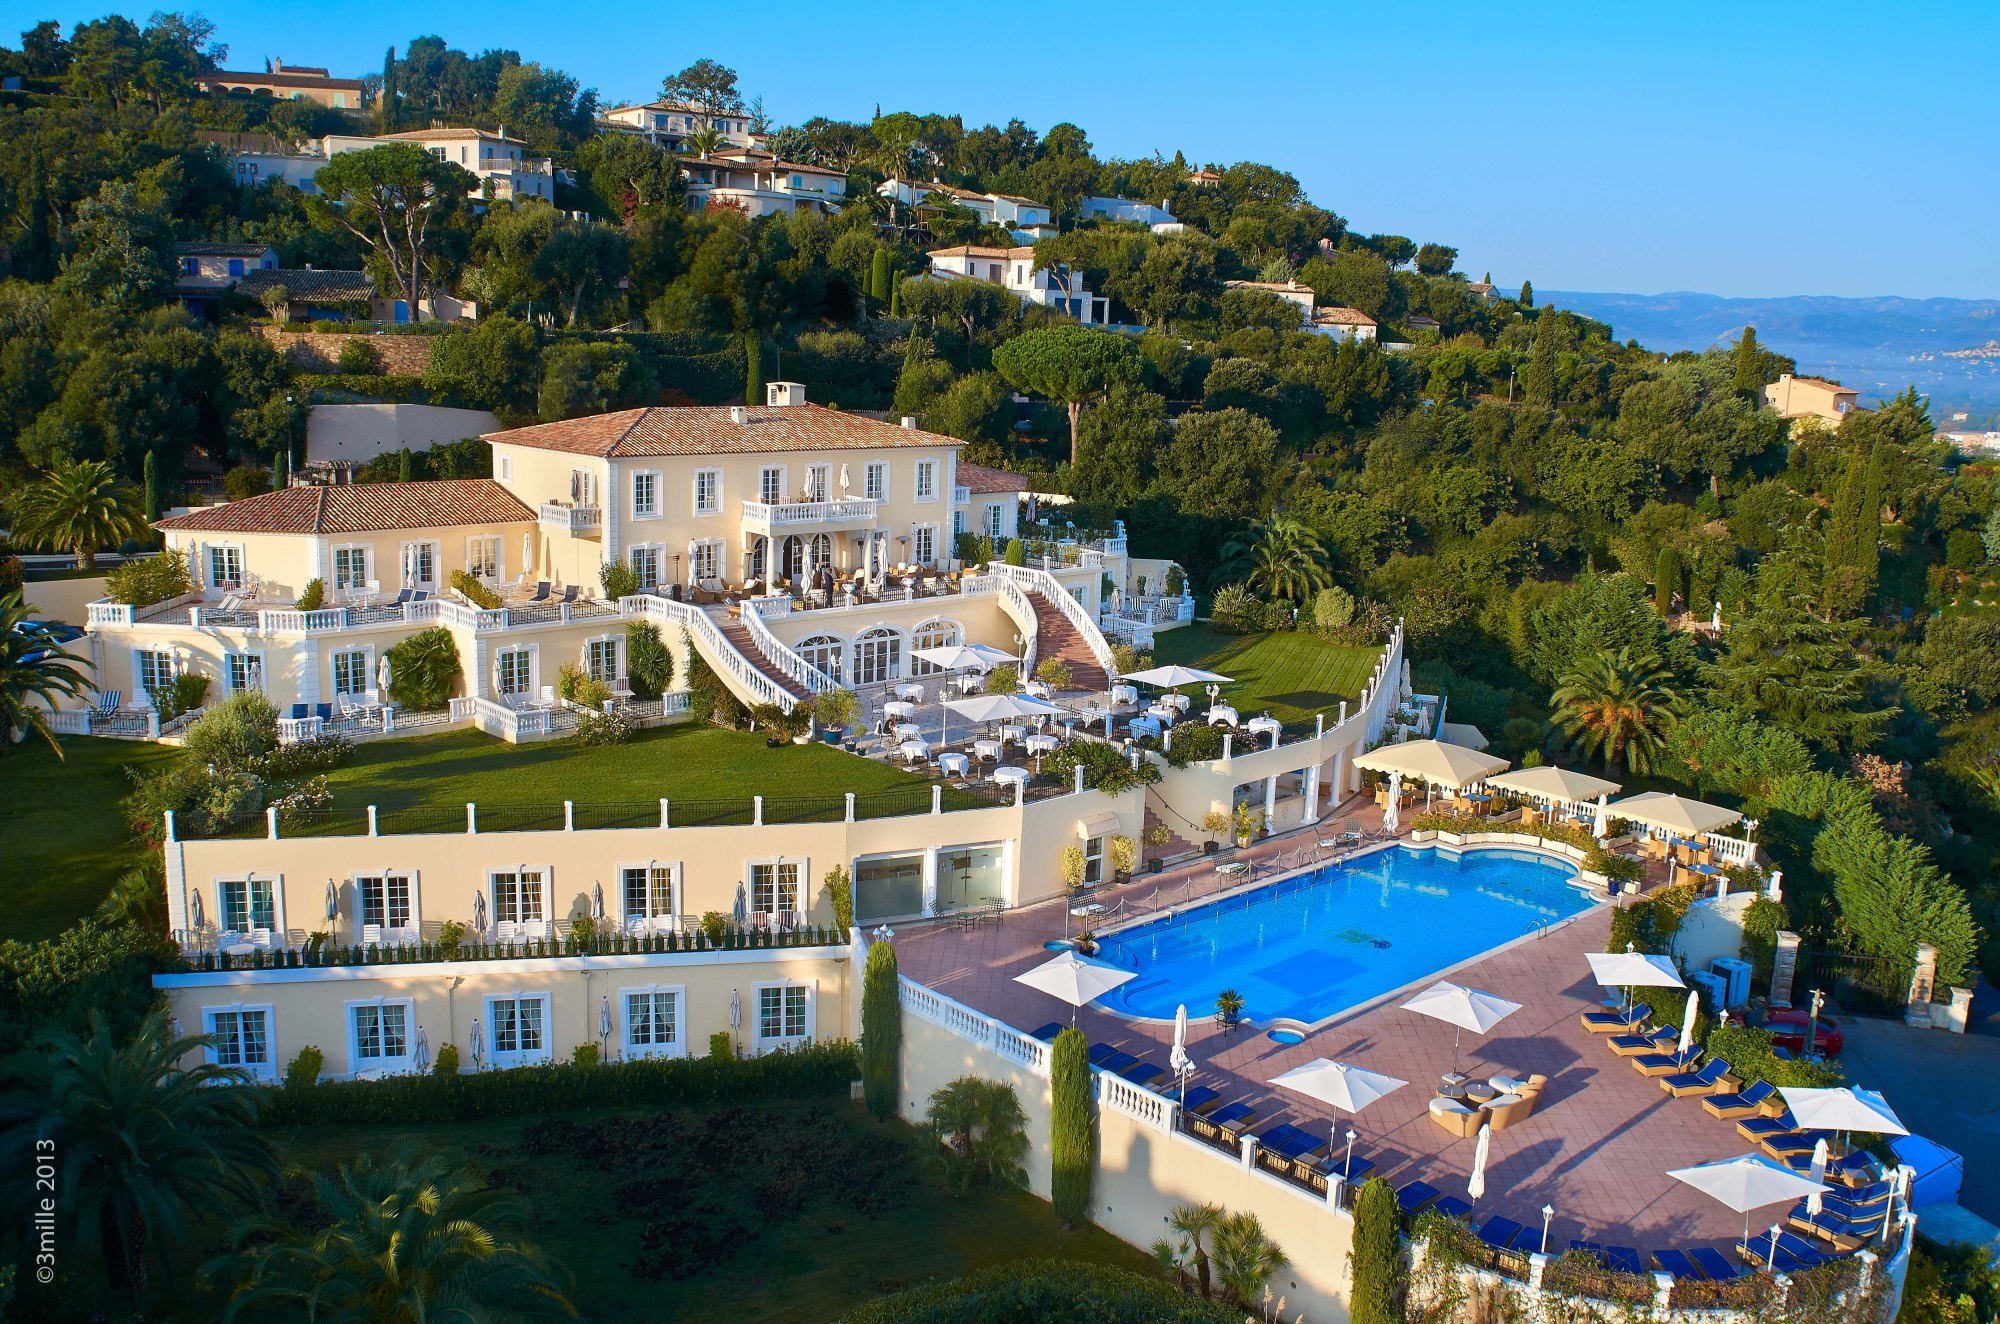 Althoff Hotel Villa Belrose Full View